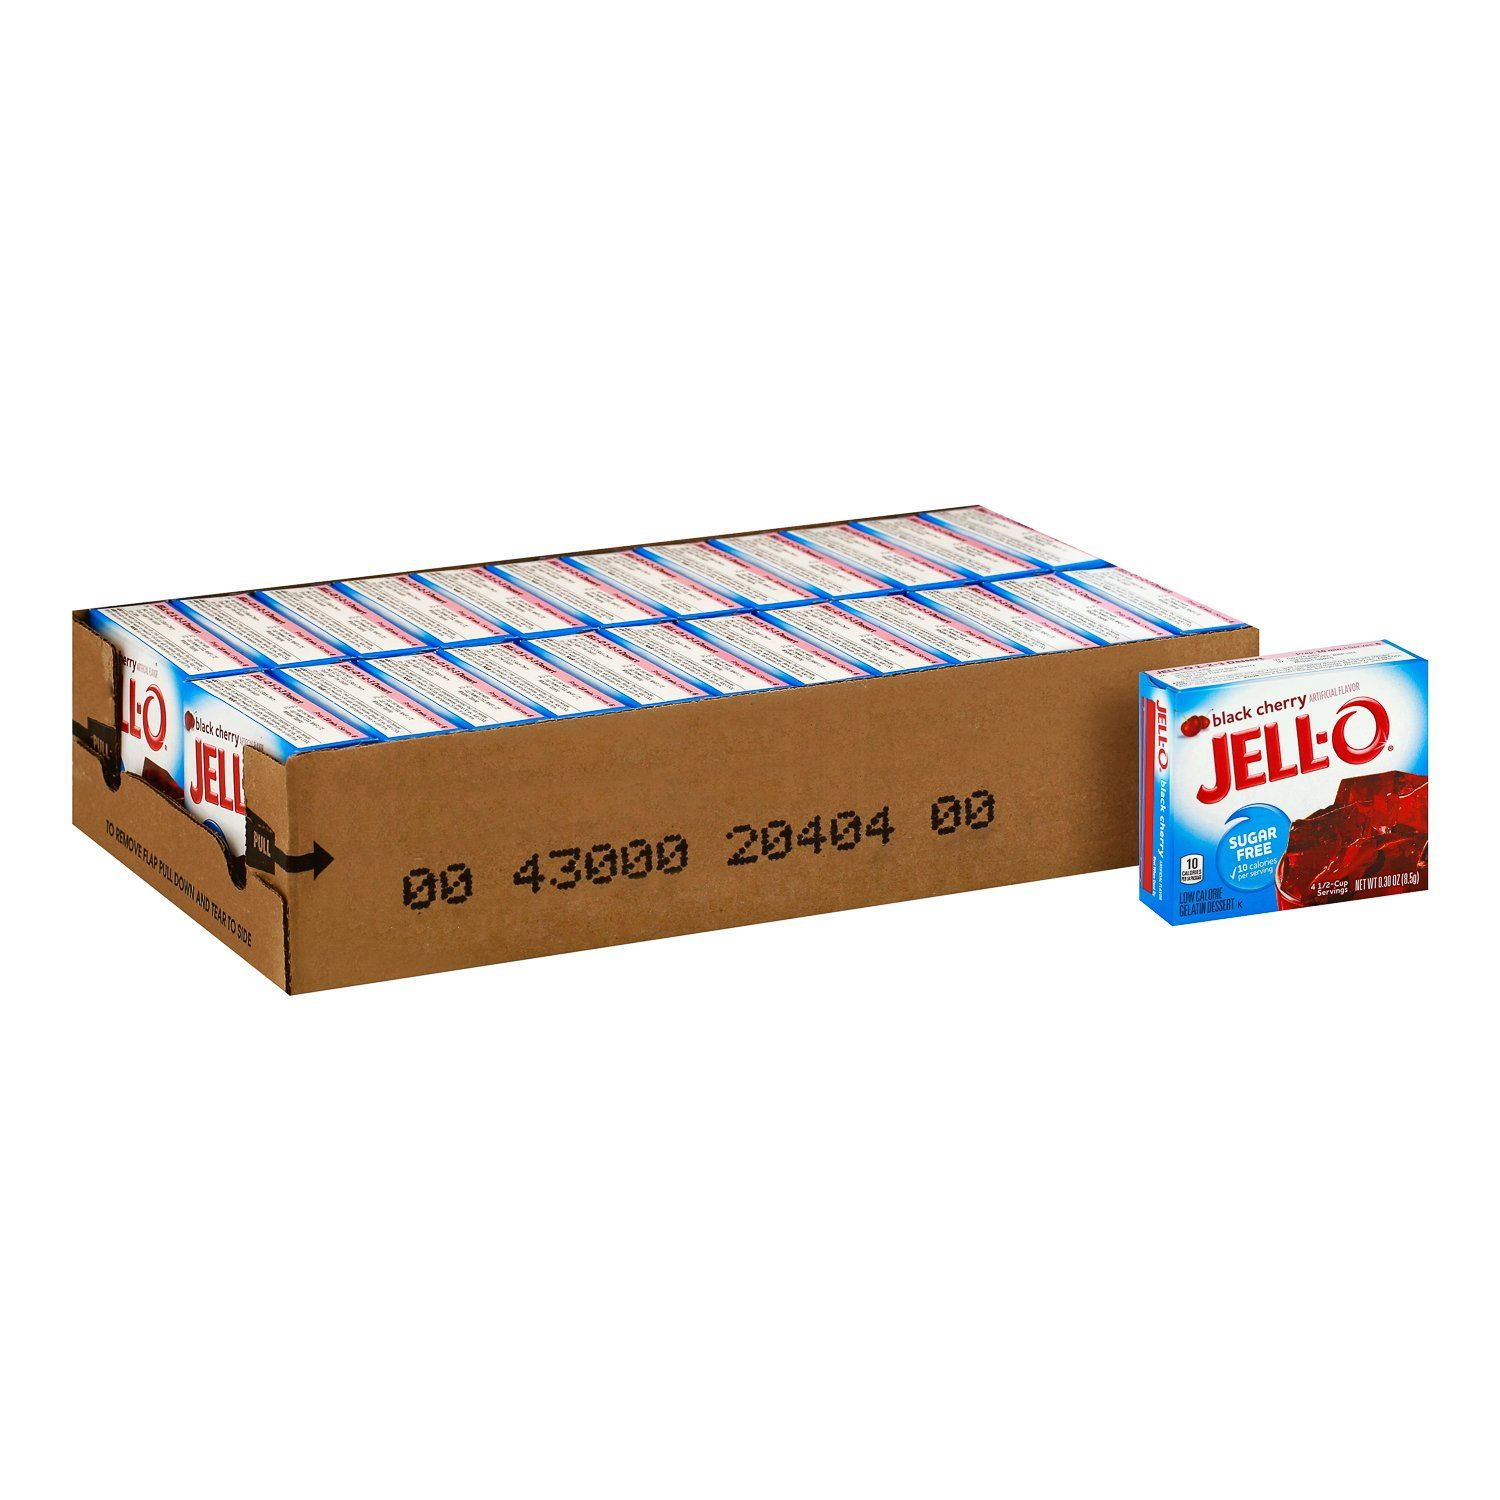 Jell-O Gelatin Mix Sugar Free Jell-O Sugar Free Black Cherry 0.3 Oz-24 Count